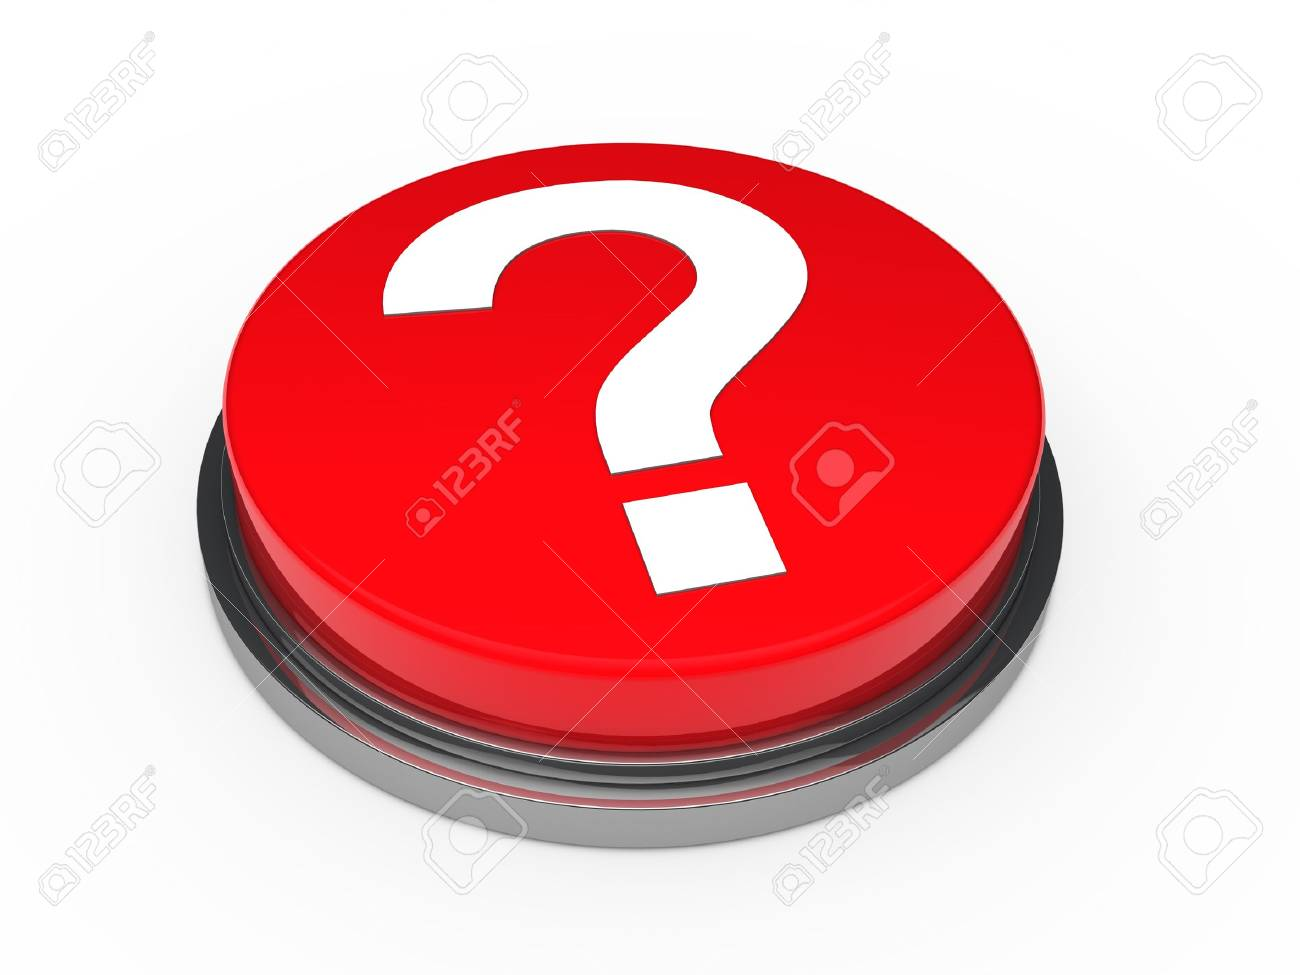 3d button red with question mark sign Stock Photo - 10792453